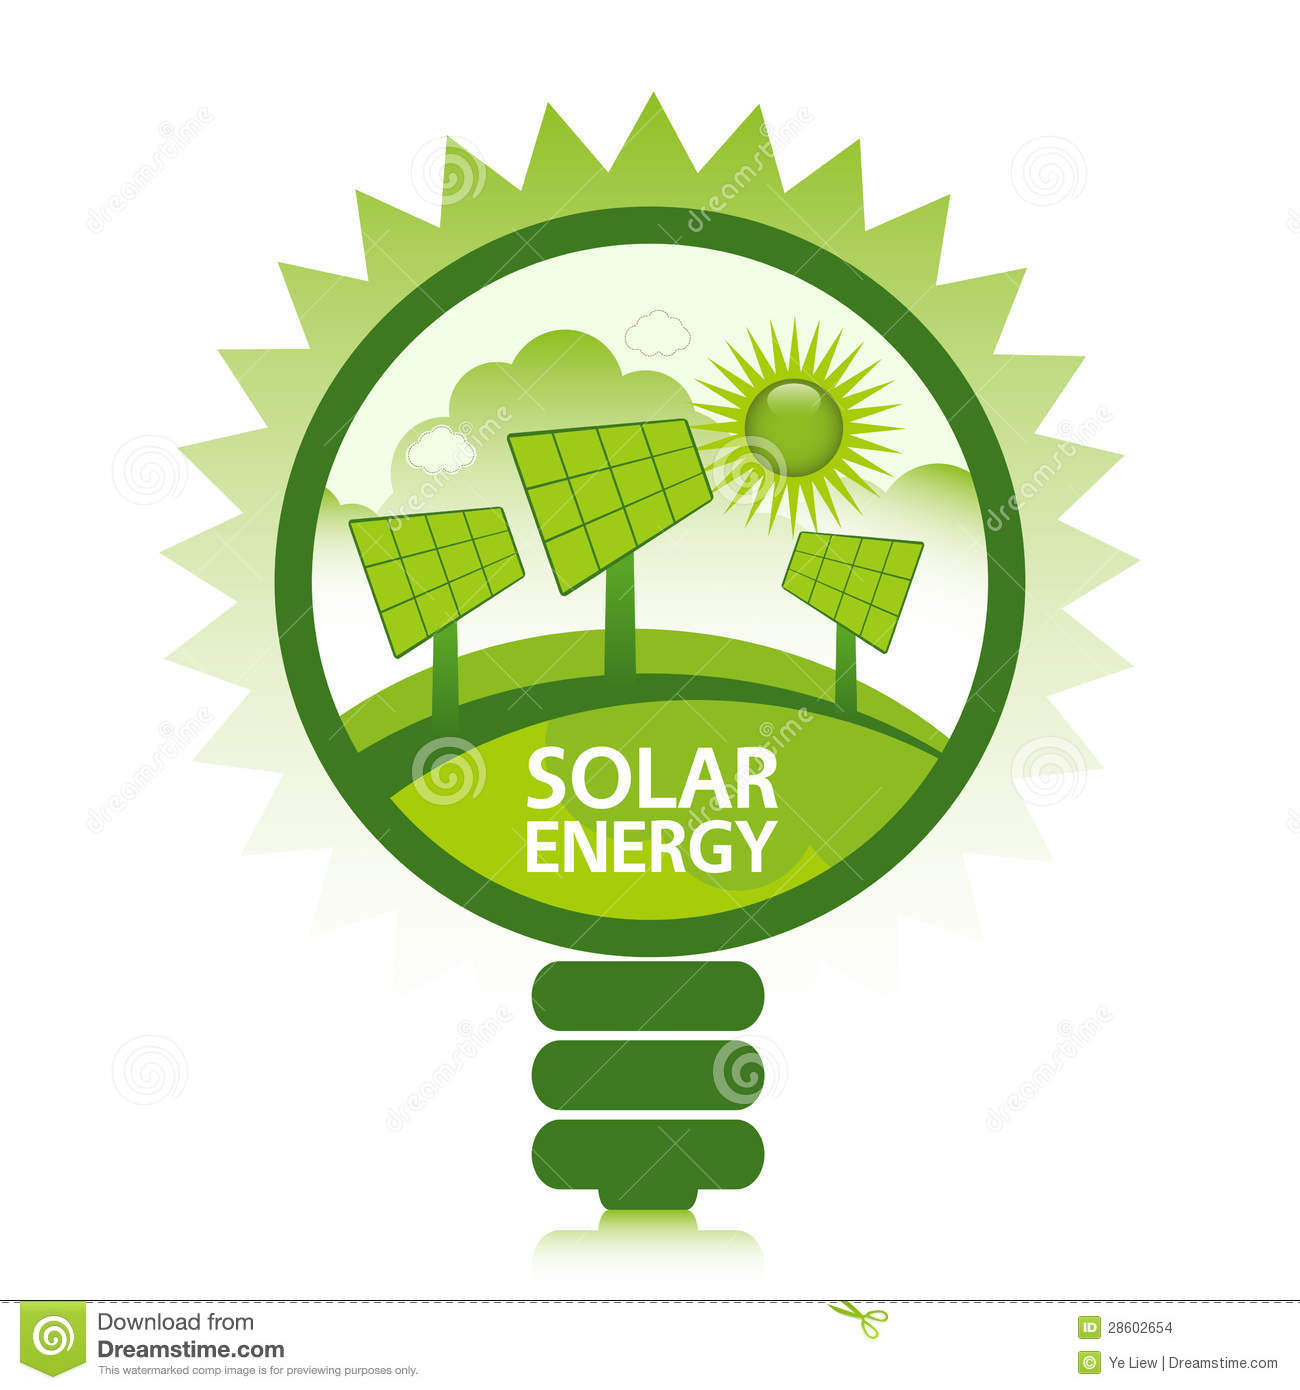 ... eco solar energy design concept. Clean energy generated by the sun